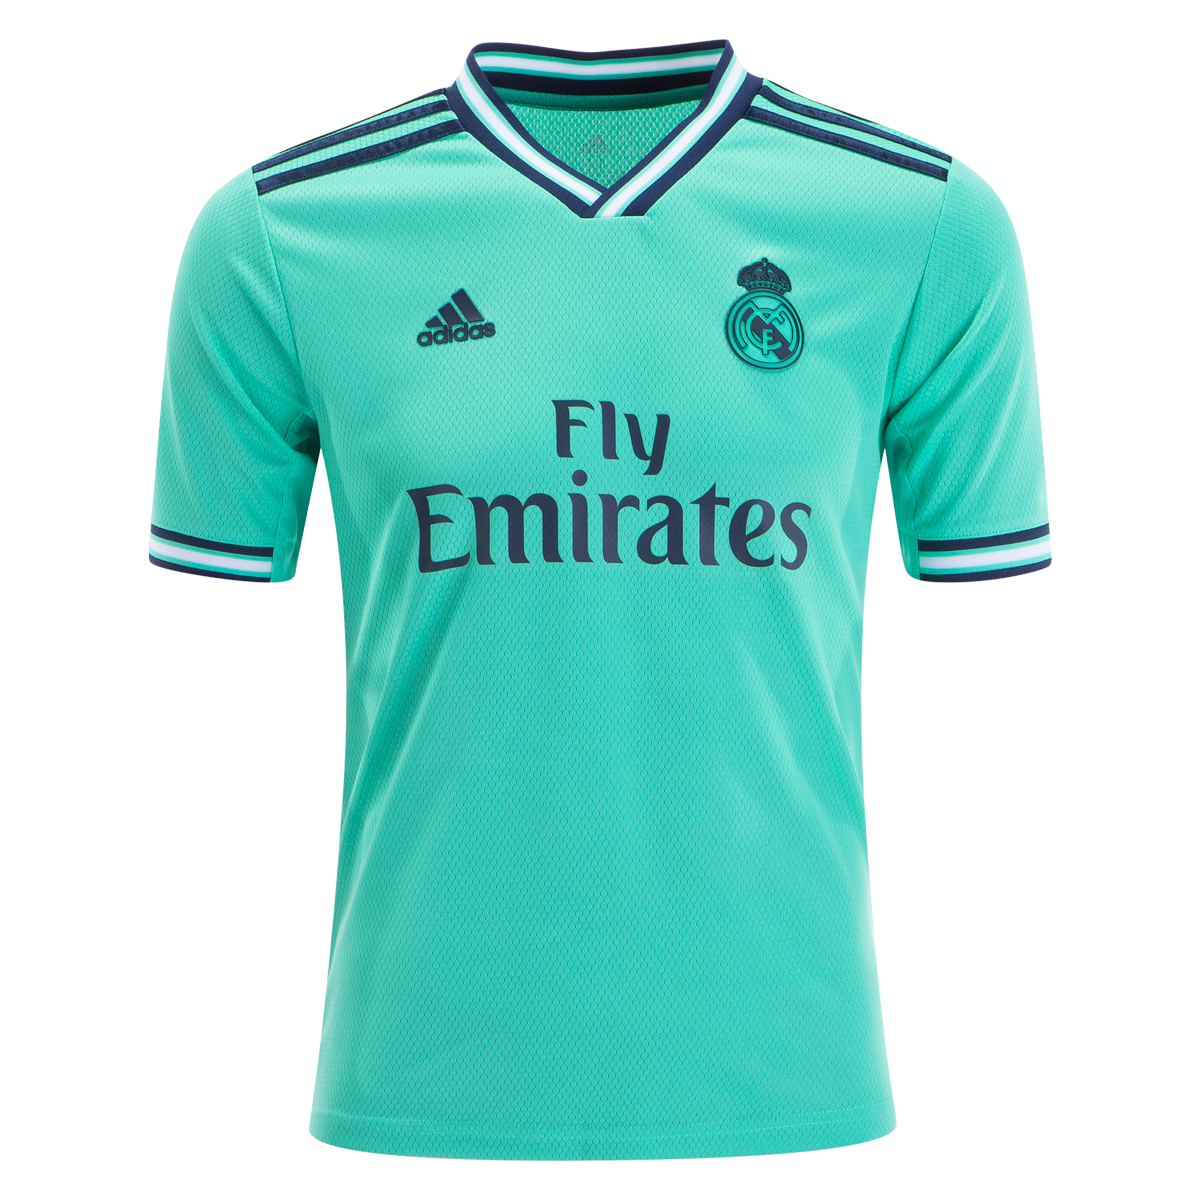 Adidas Real Madrid Youth Third Jersey 19 20 Yxl In 2020 Real Madrid Jersey